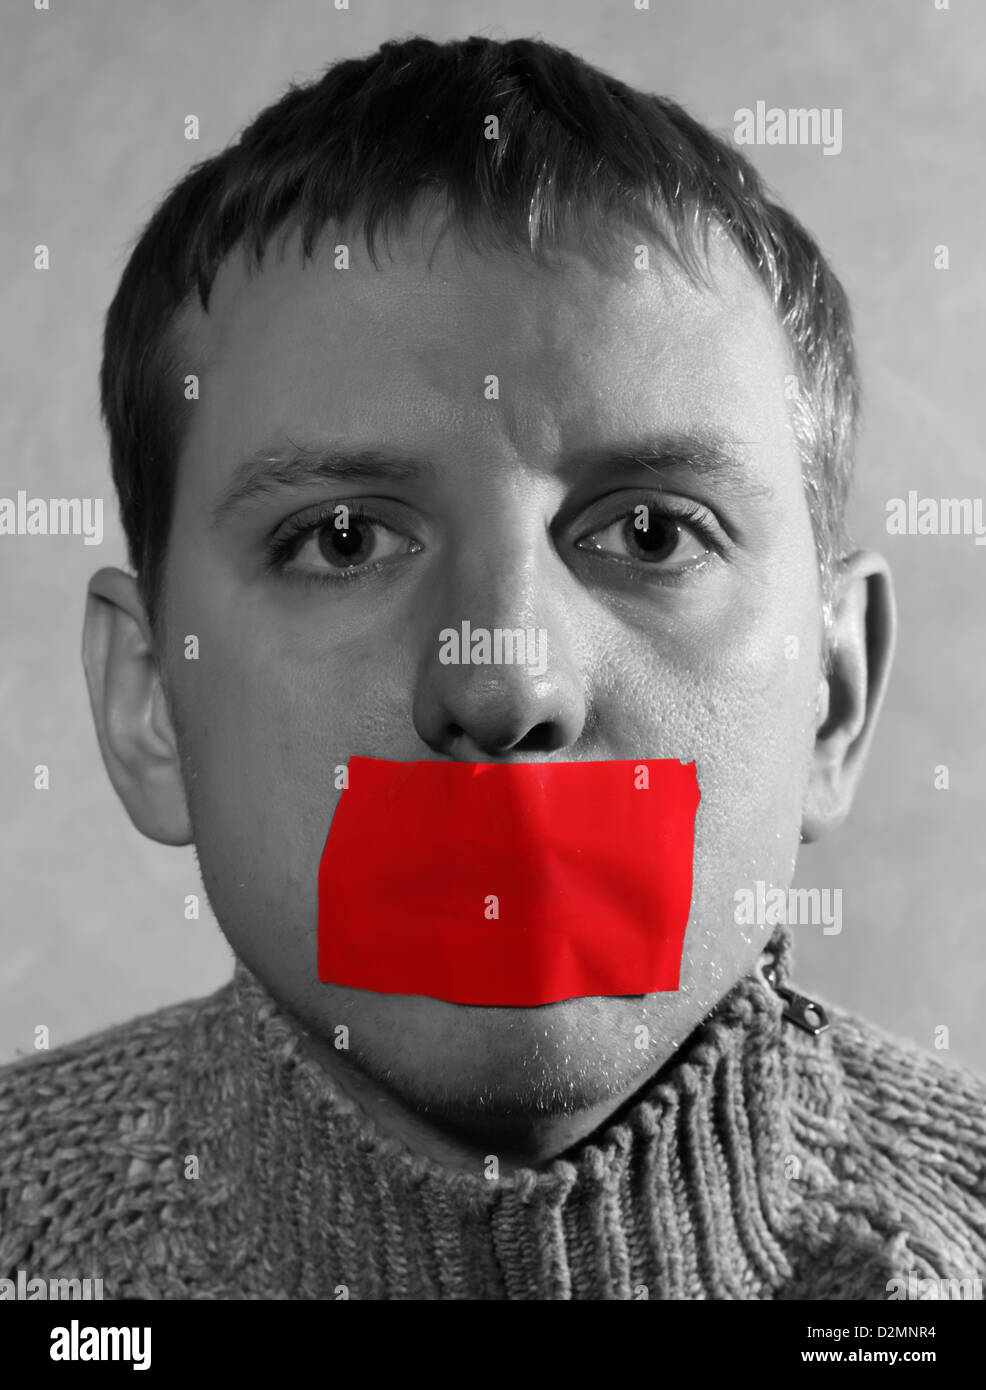 man with closed red tape mouth, creative, symbolizing the fight for freedom of speech and against censorship - Stock Image